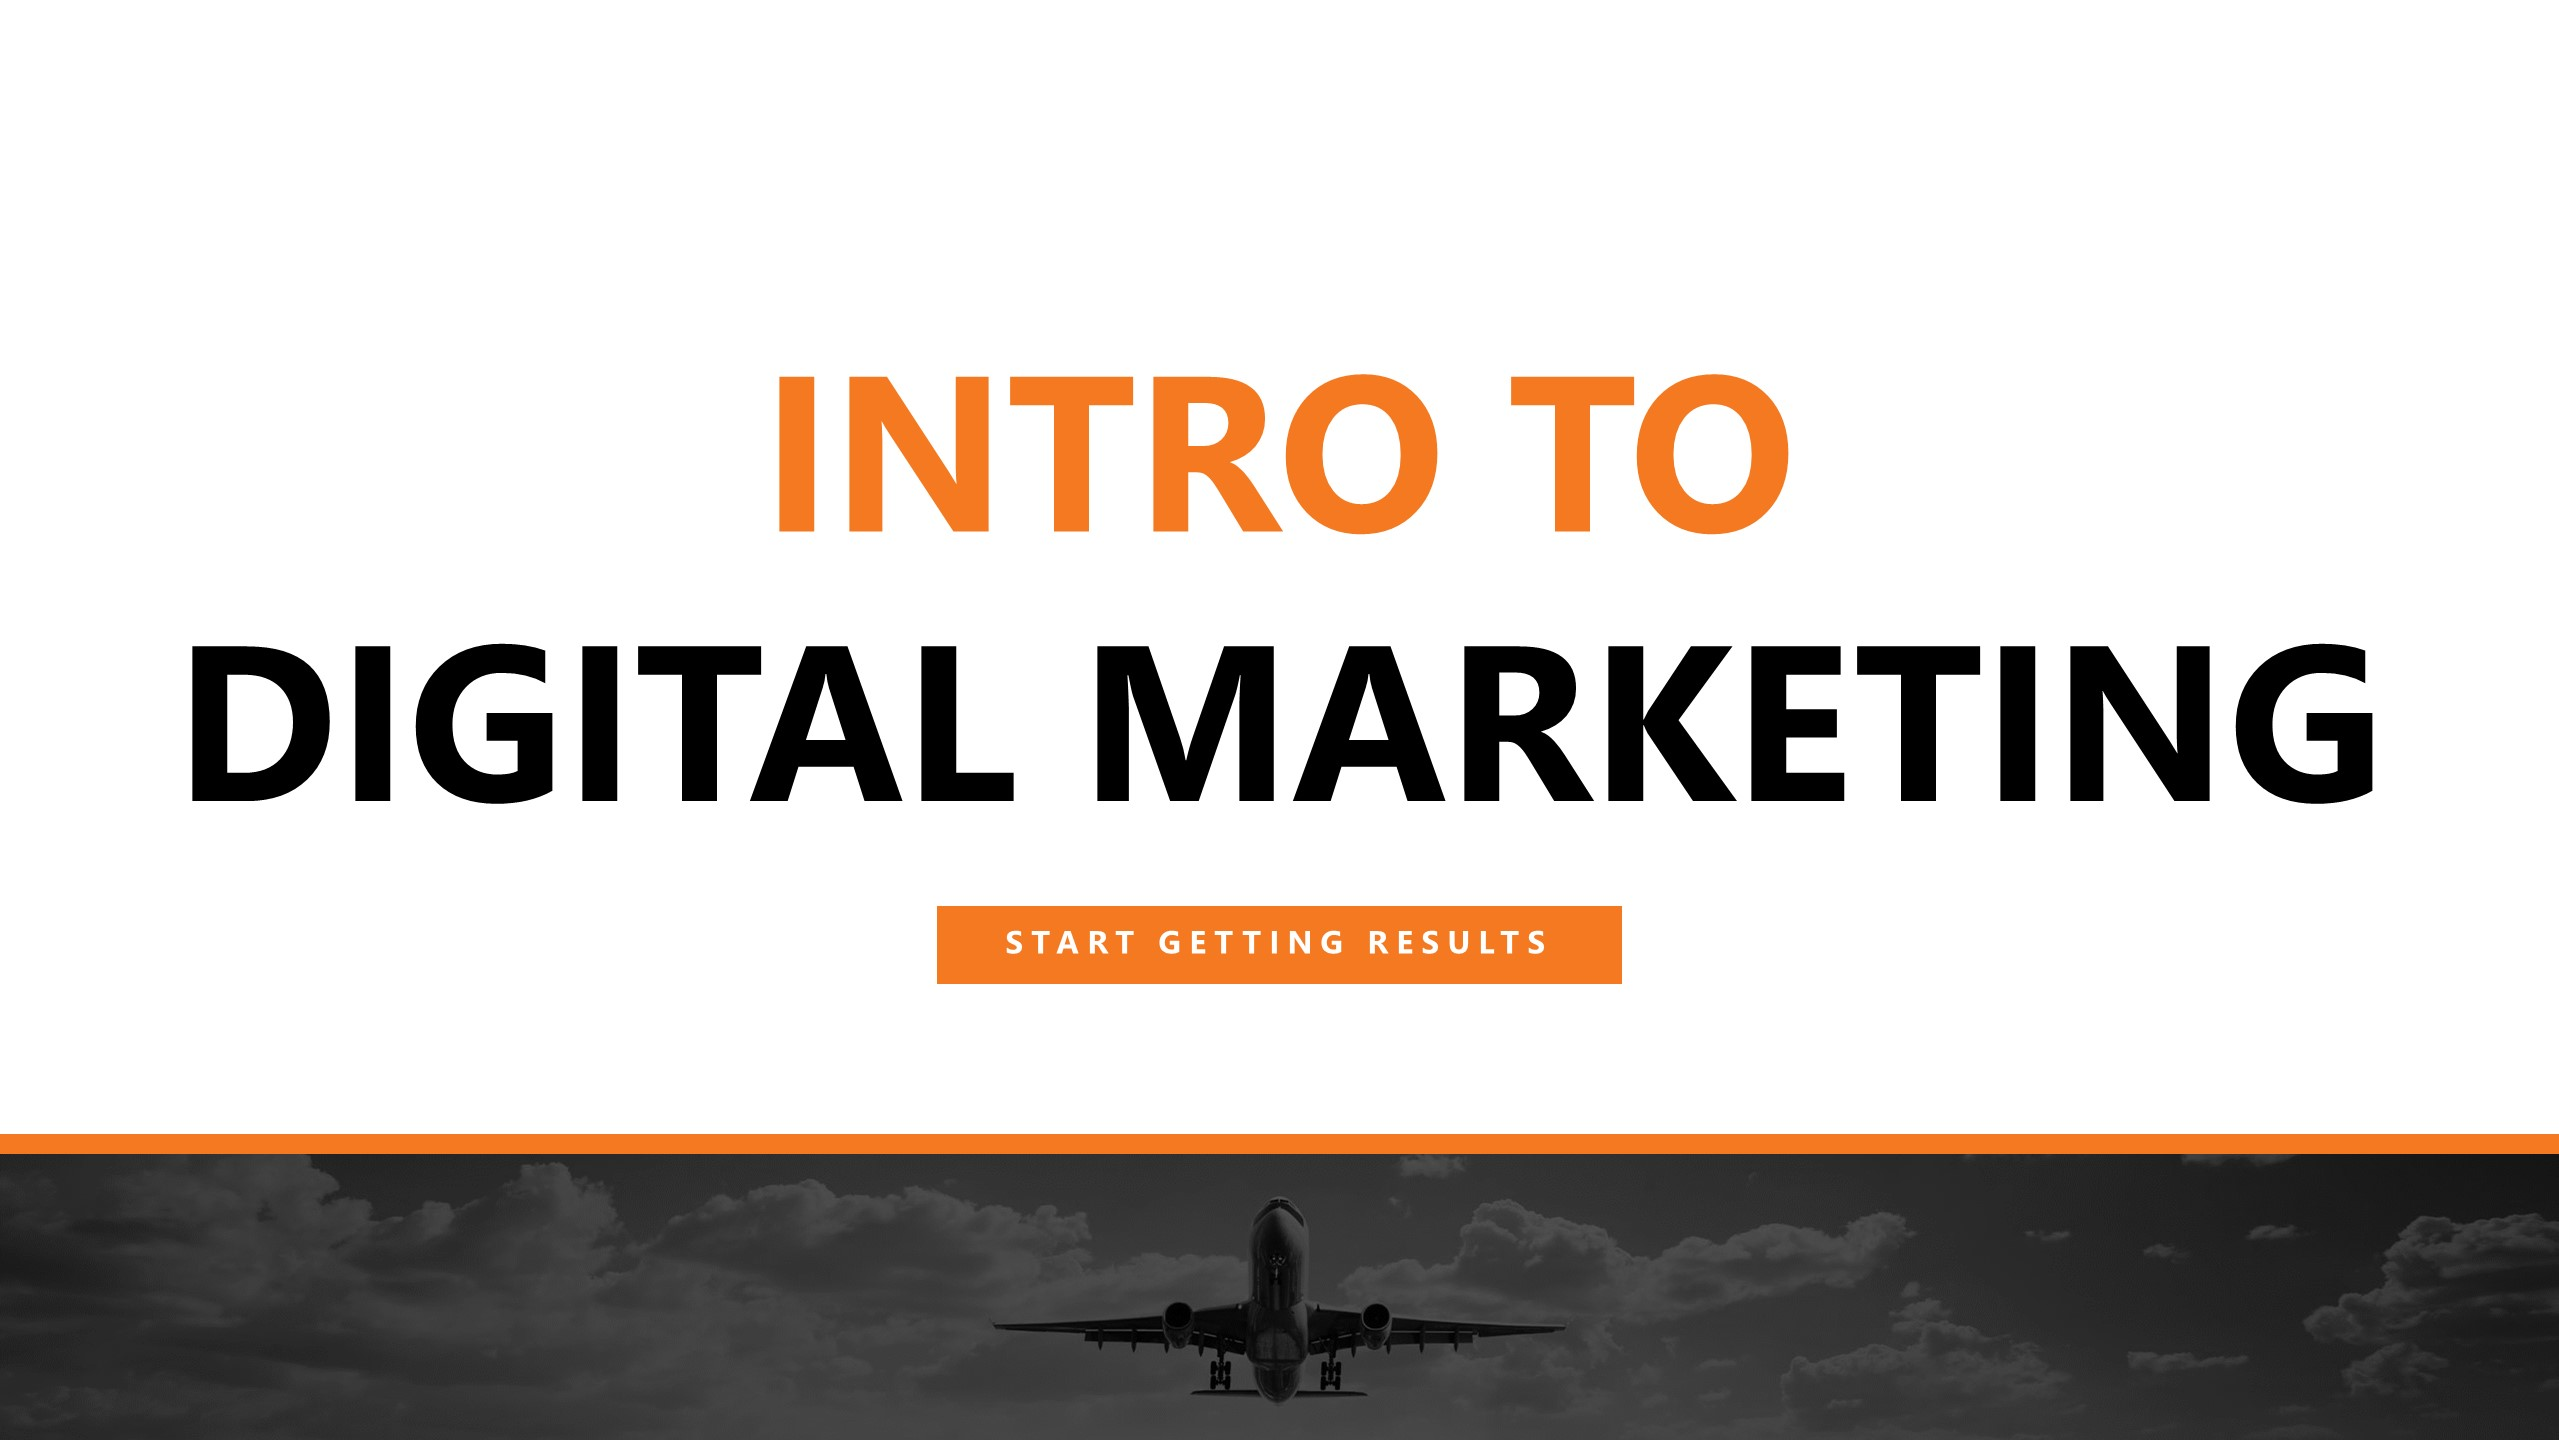 New for 2019 – Intro to Digital Marketing Workshop (Perth)